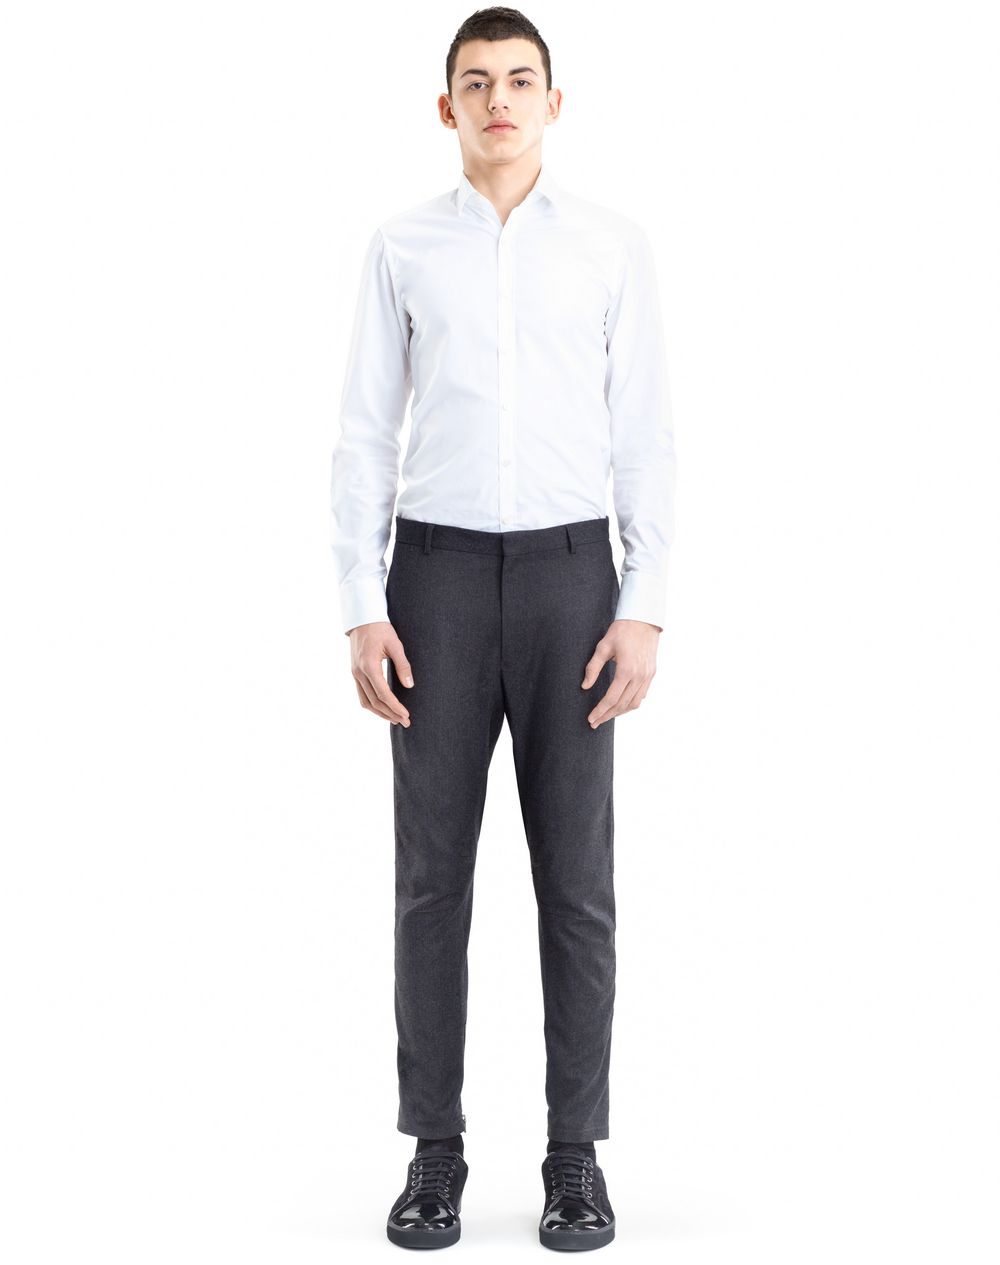 WOOL AND CASHMERE BIKER TROUSERS - Lanvin